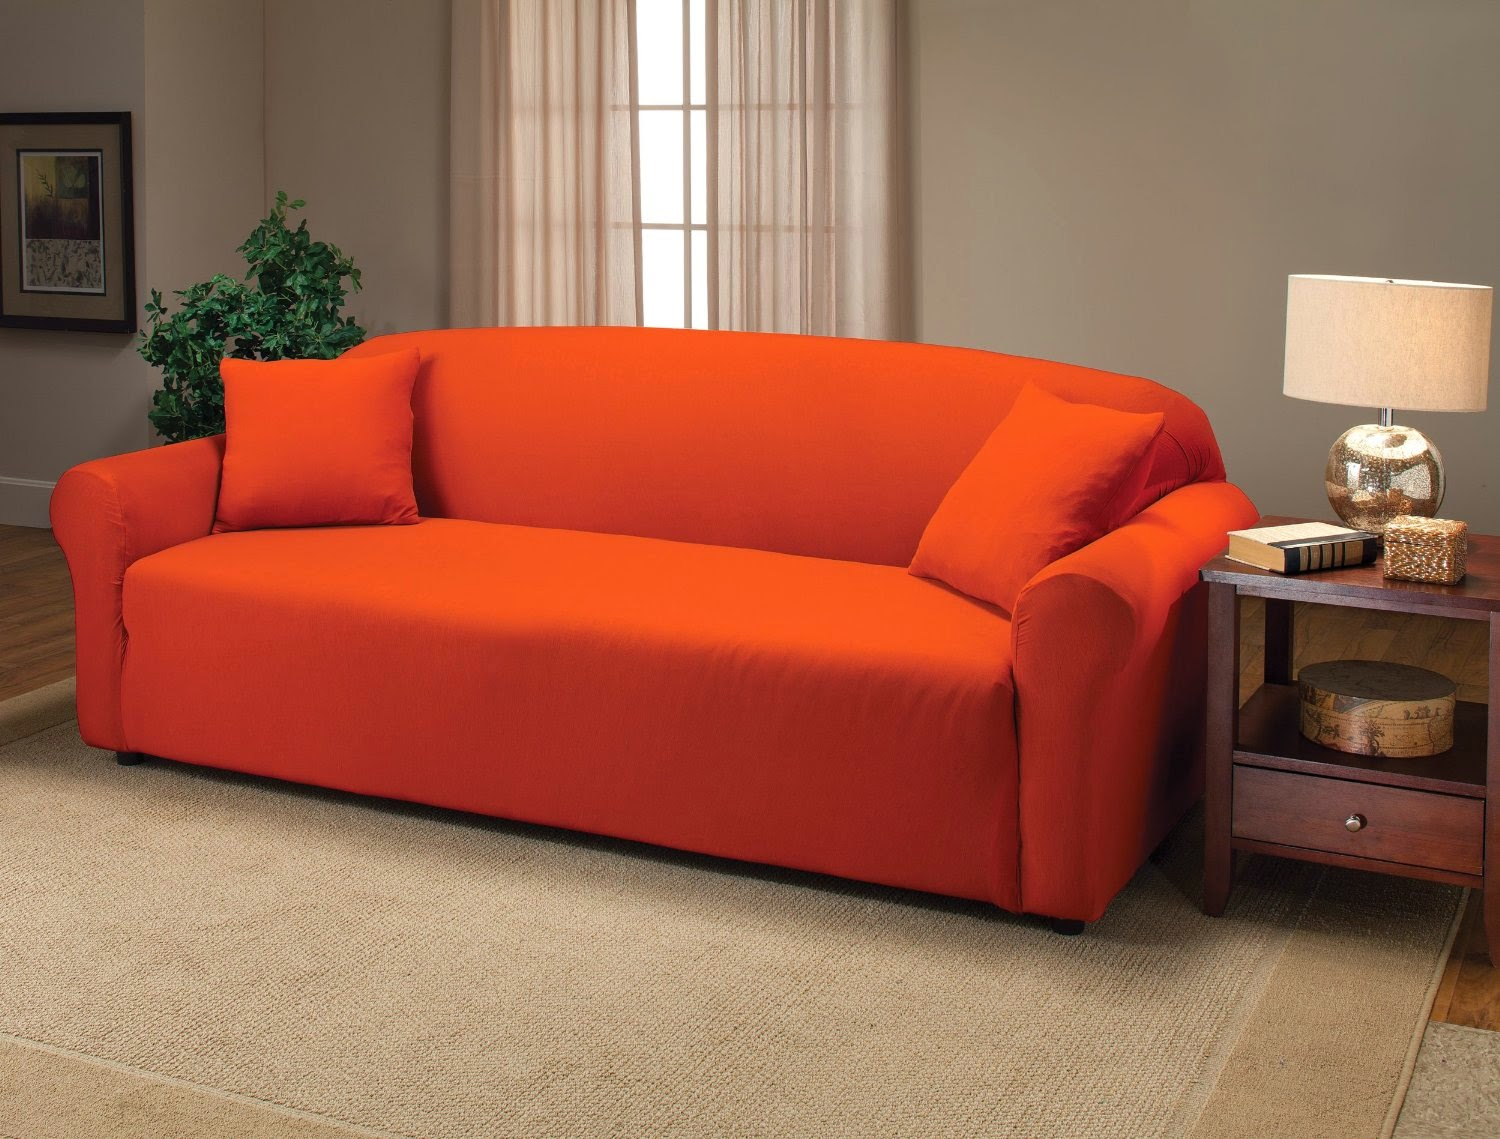 orange couch orange couch cover